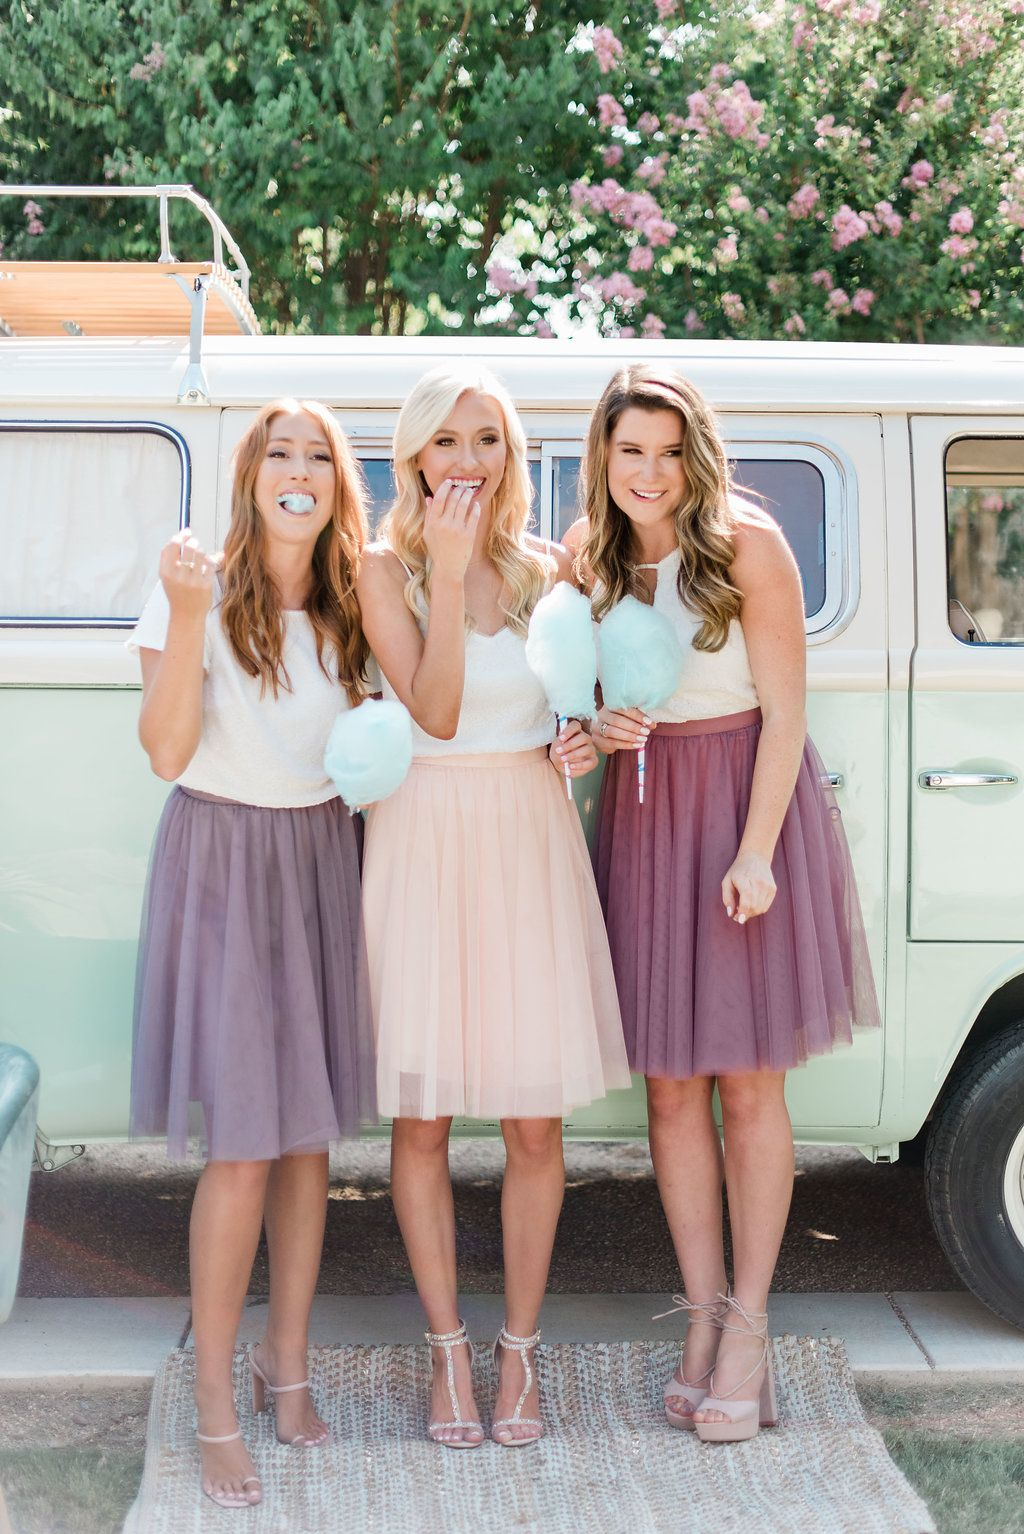 Mix And Match Revelry Bridesmaid Dresses And Separates Revelry Has A Wide Selection Of U Tulle Skirt Bridesmaid Bridesmaid Skirts Bridesmaid Dresses Separates